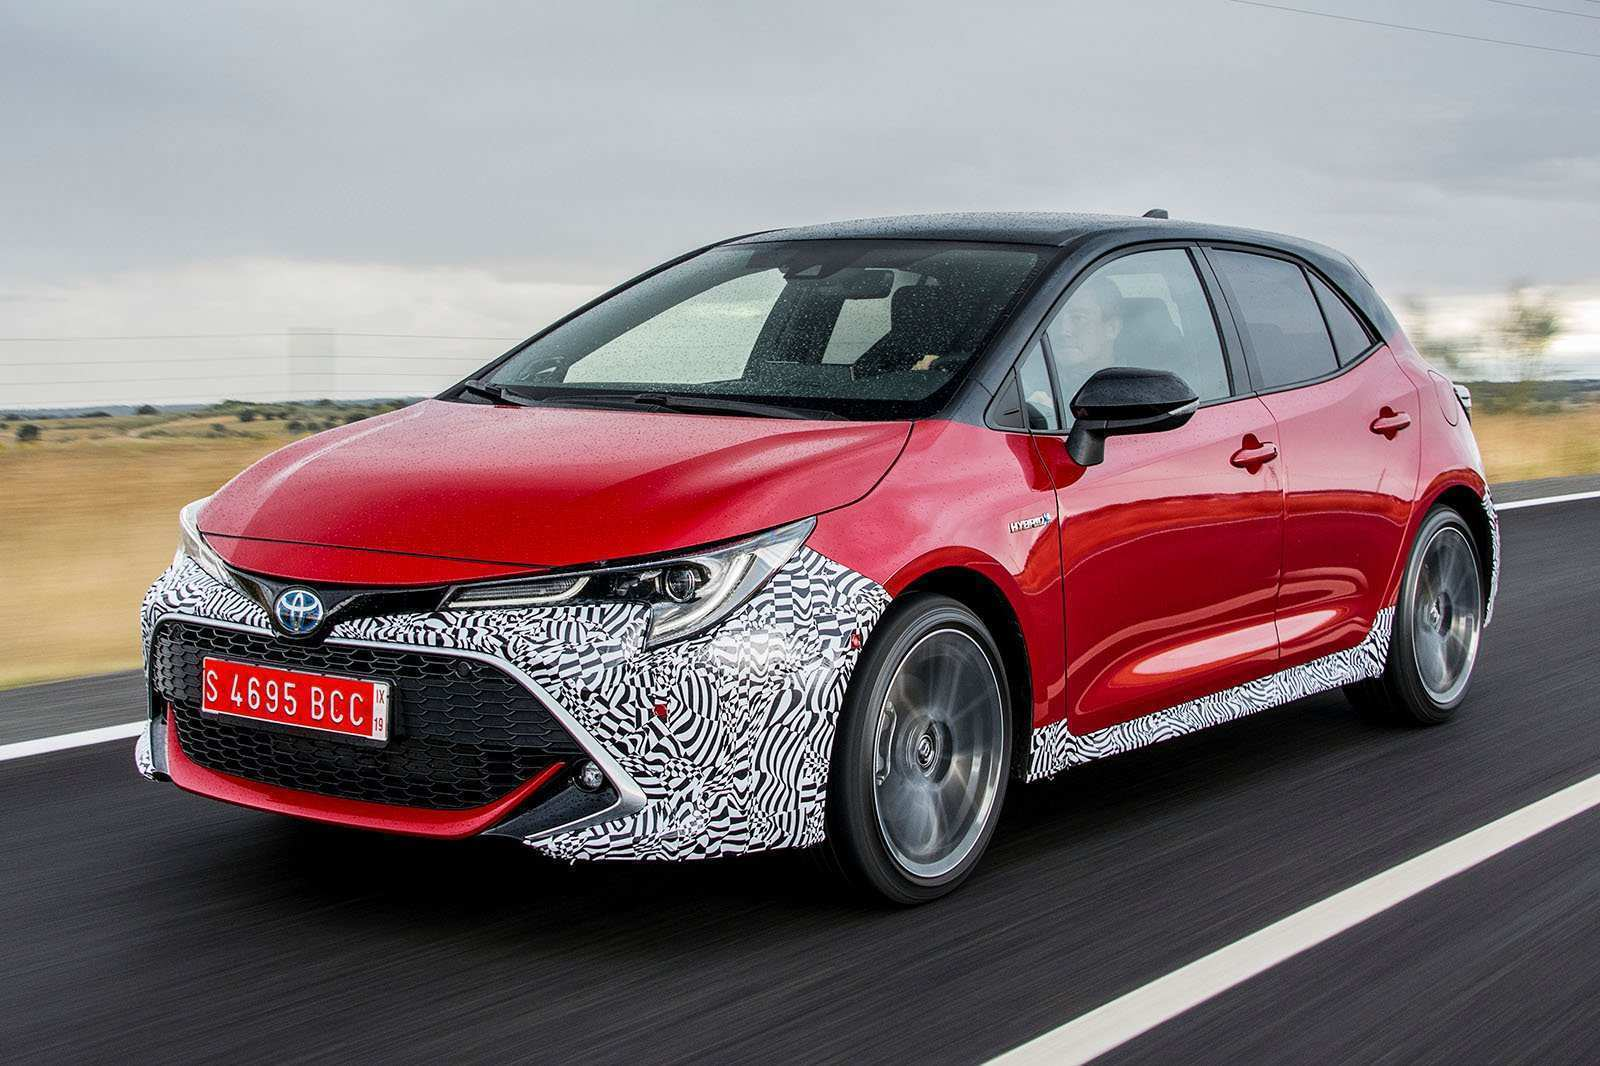 99 A Toyota Auris 2019 Release Date Price Design And Review